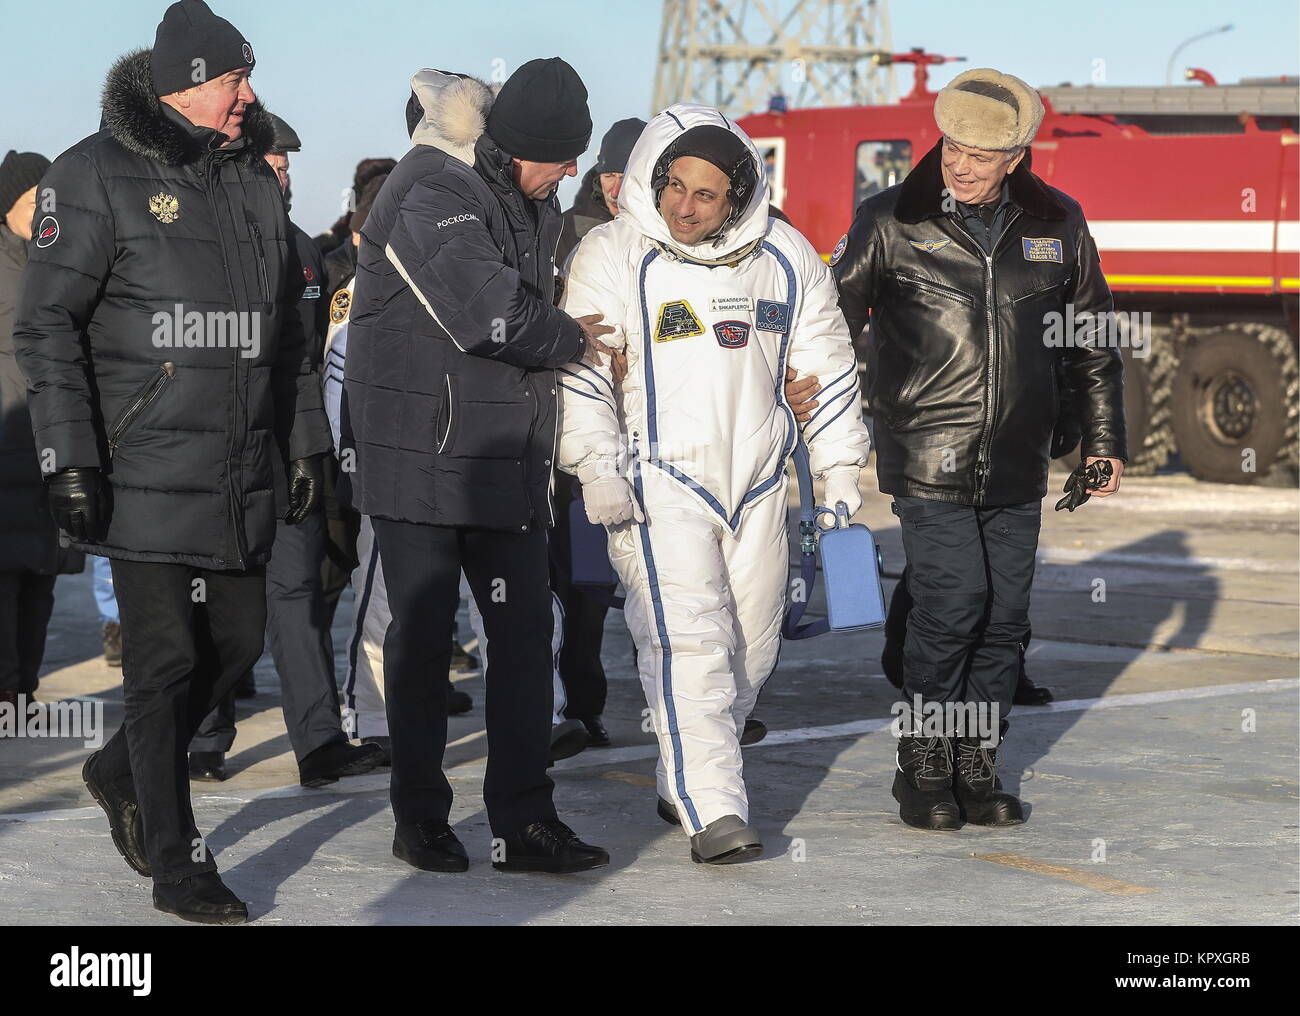 Baikonur, Kazakhstan. 17th Dec, 2017. A member of the ISS Expedition 54/55 prime crew, Russian cosmonaut Anton Shkaplerov - Stock Image